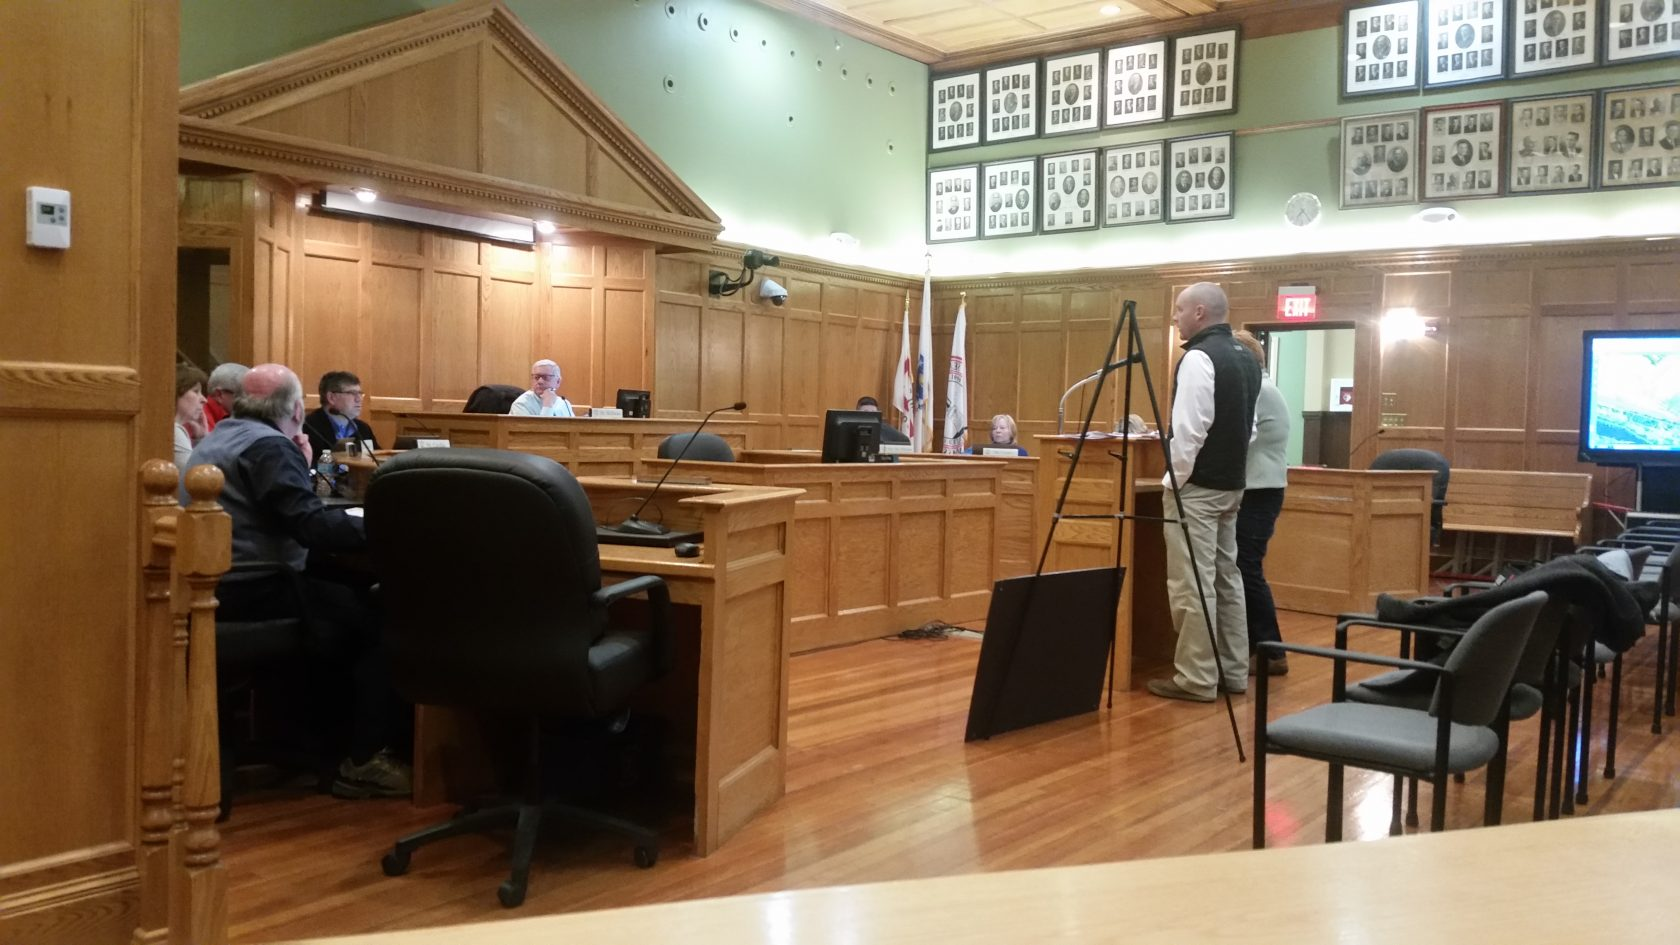 Planning board has a newly vacant position